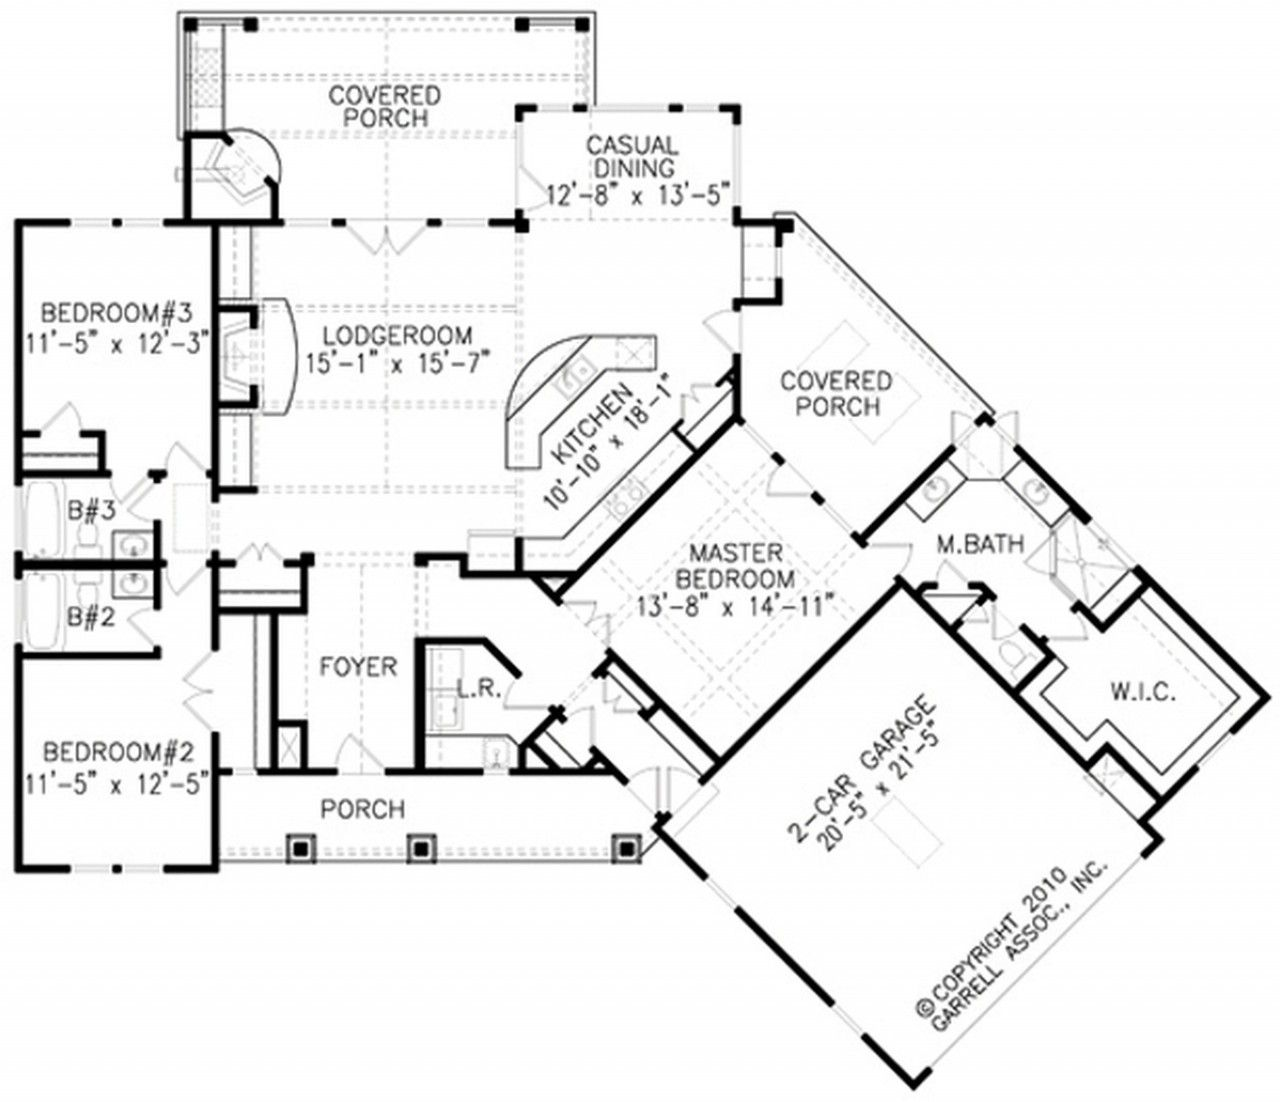 Unique House Plans plan 041h 0143 find unique house plans home plans and floor plans at Astounding House Tours Decor Fetching House Stairs Pleasing Tools Fusion 10014 Hot Springs Cottage Iii Cool House Plansunique